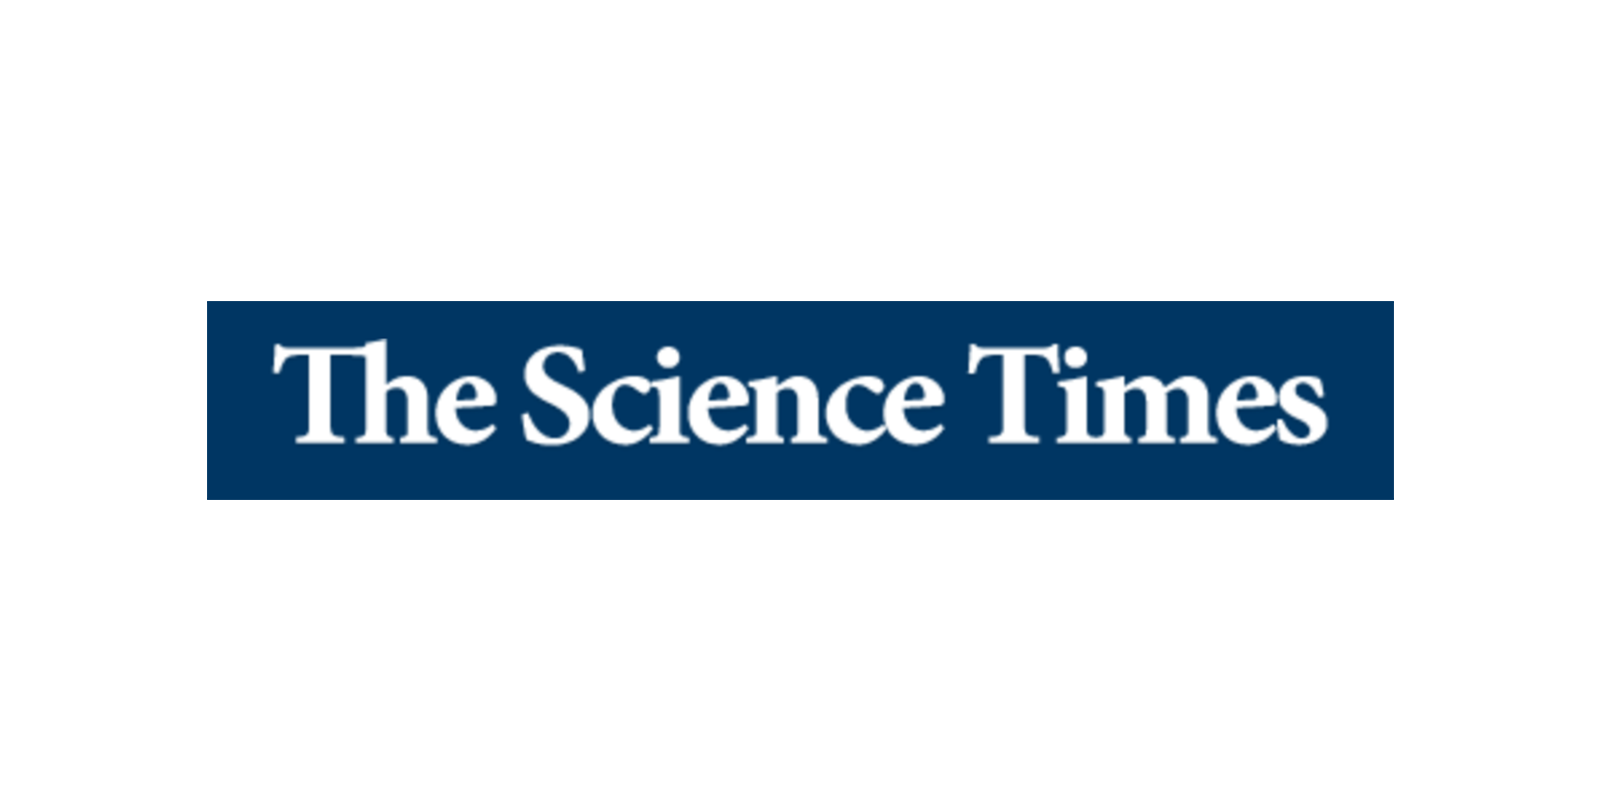 The Science Times